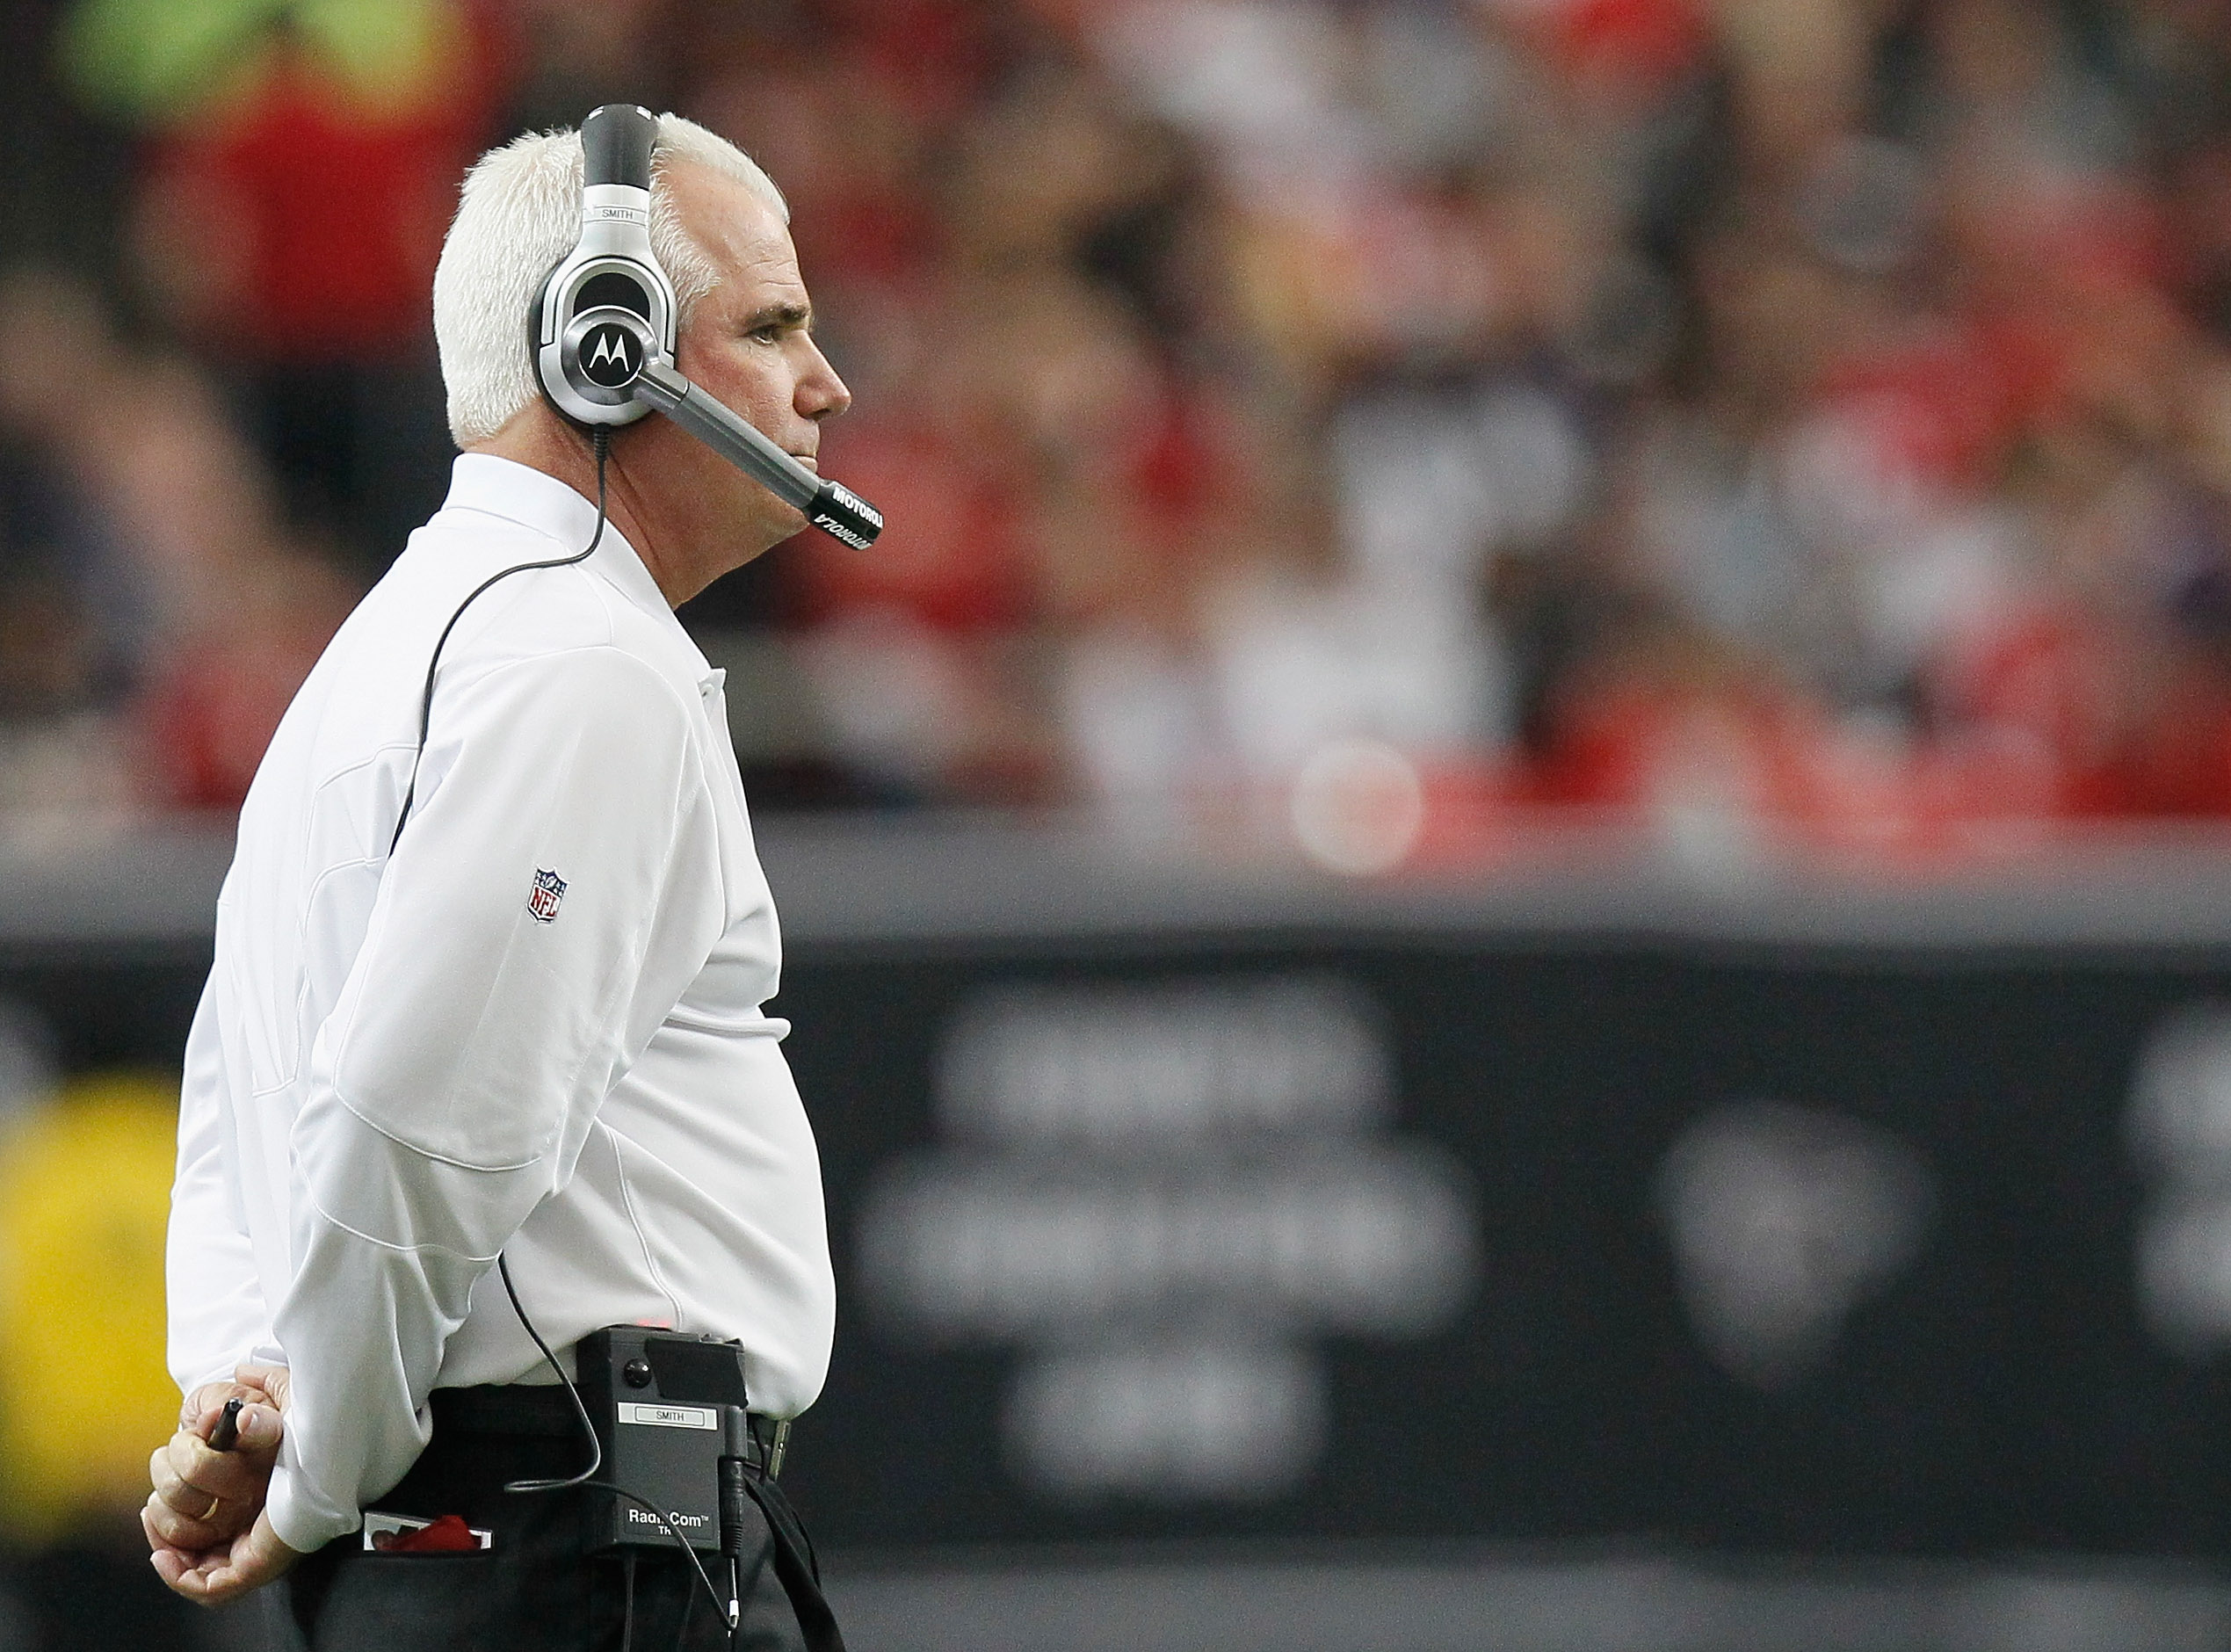 Mike Smith has put faith in his offense, which isnt hard to do considering their 11-13 fourth down conversion rate